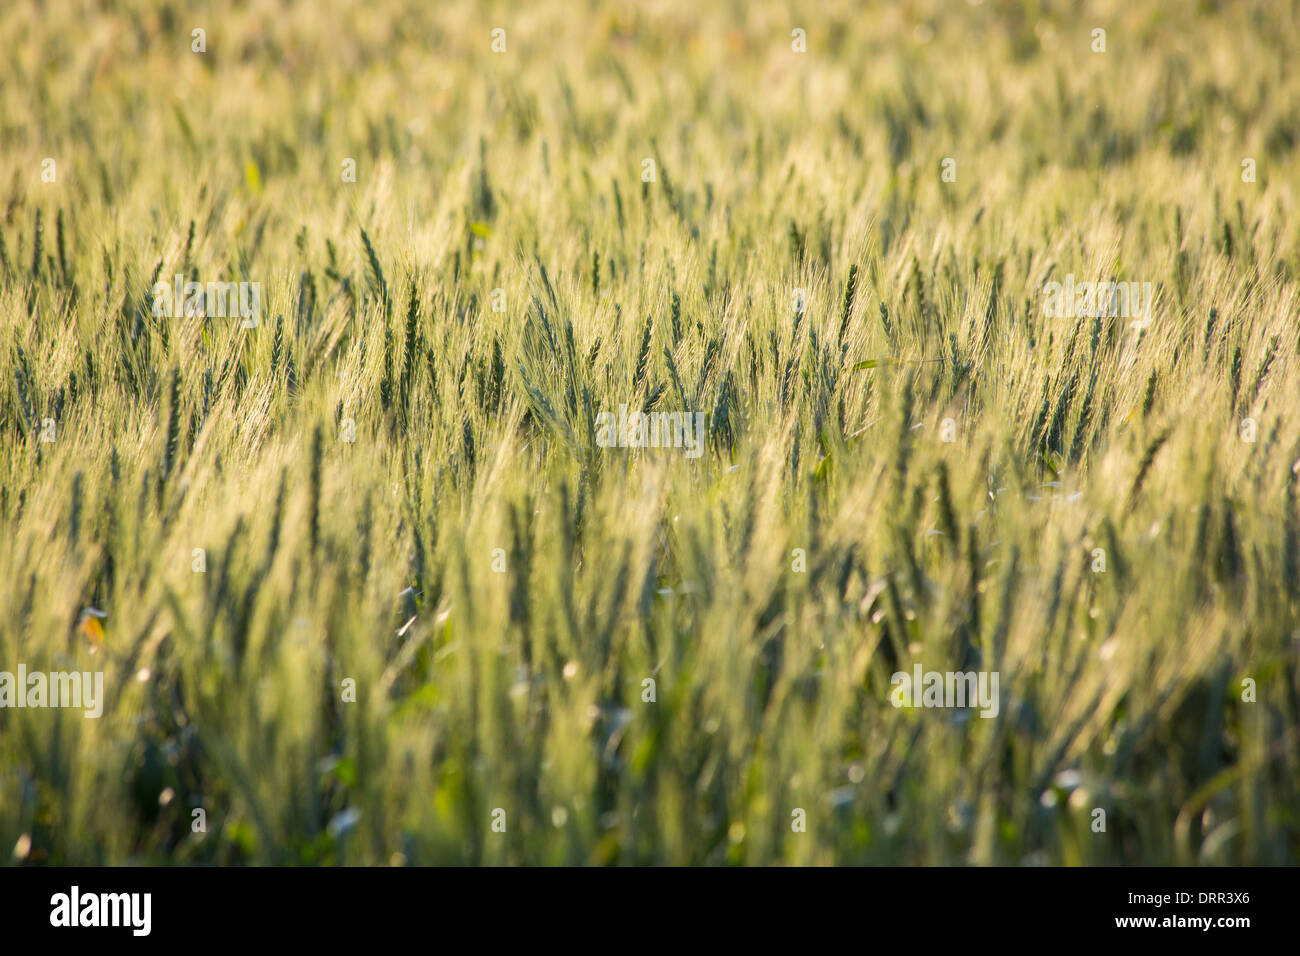 Wheat growing in a field in warm afternoon light, near Griffith, NSW, Australia - Stock Image